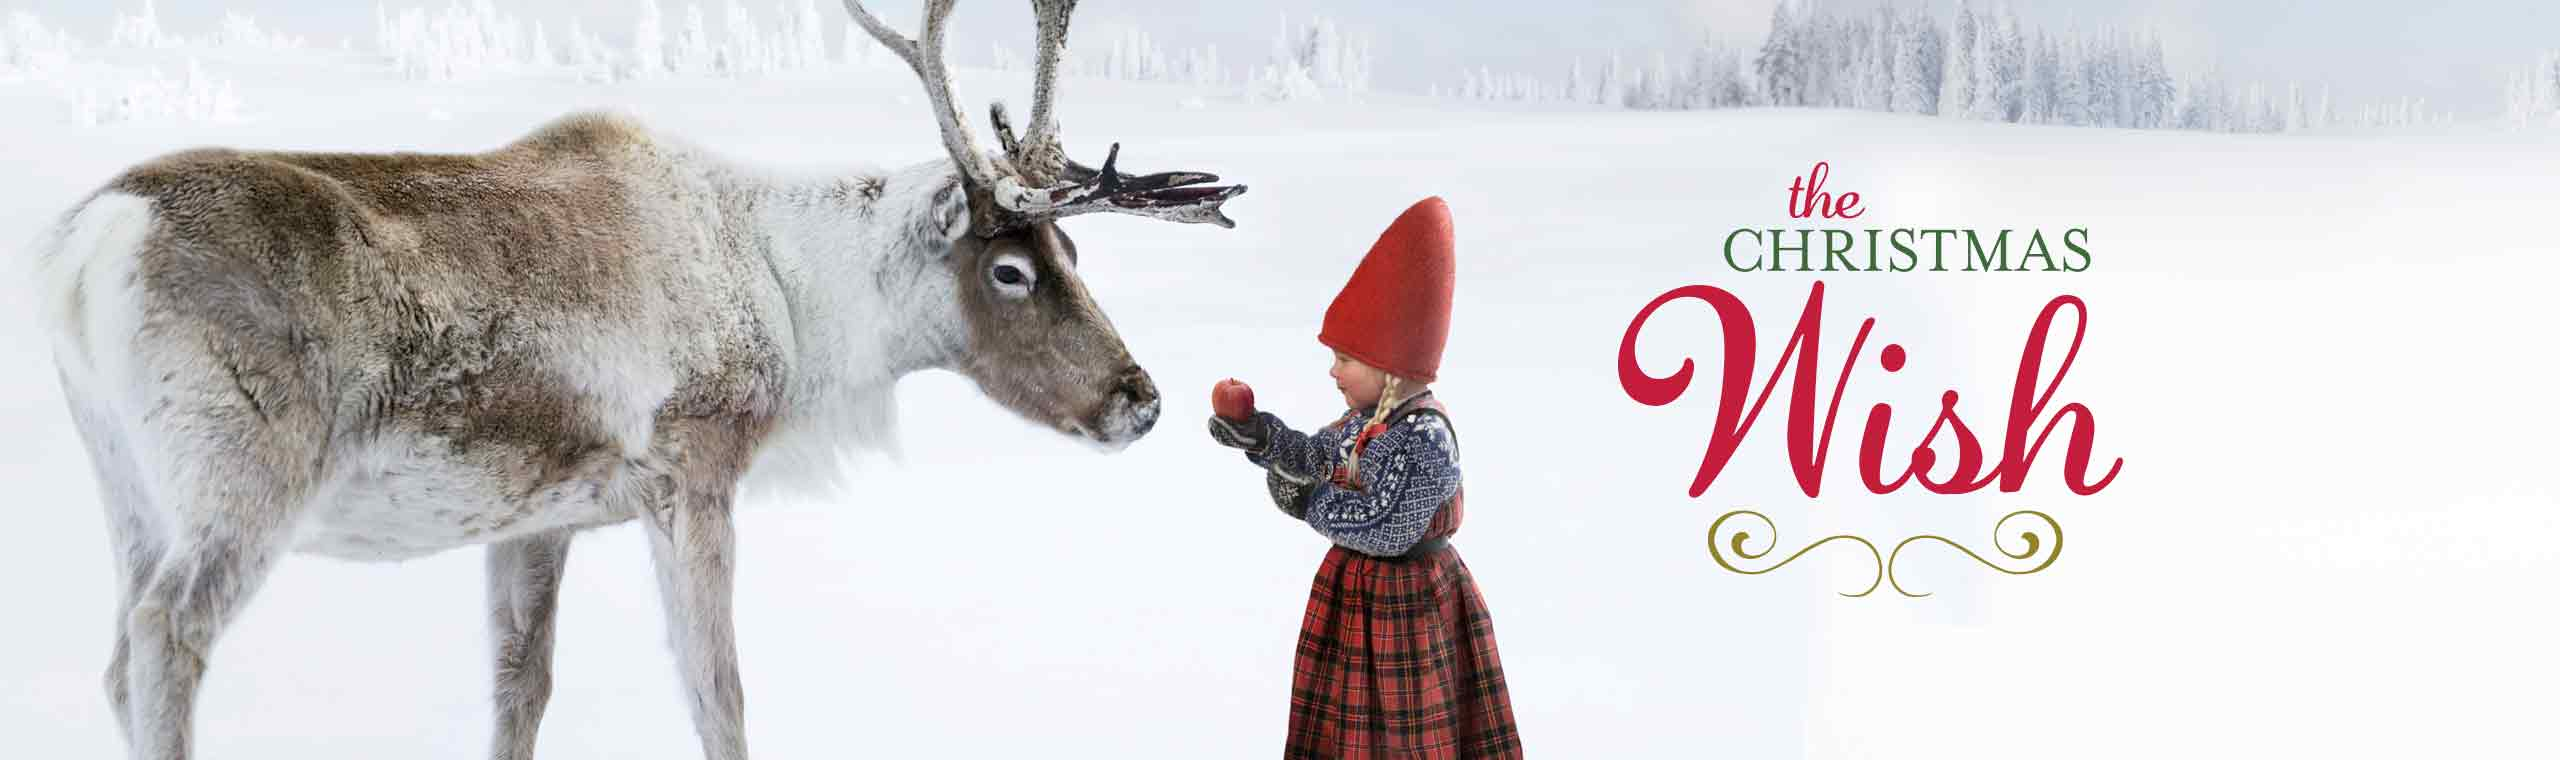 A picture of a moose and a elf girl with the text the Christmas wish